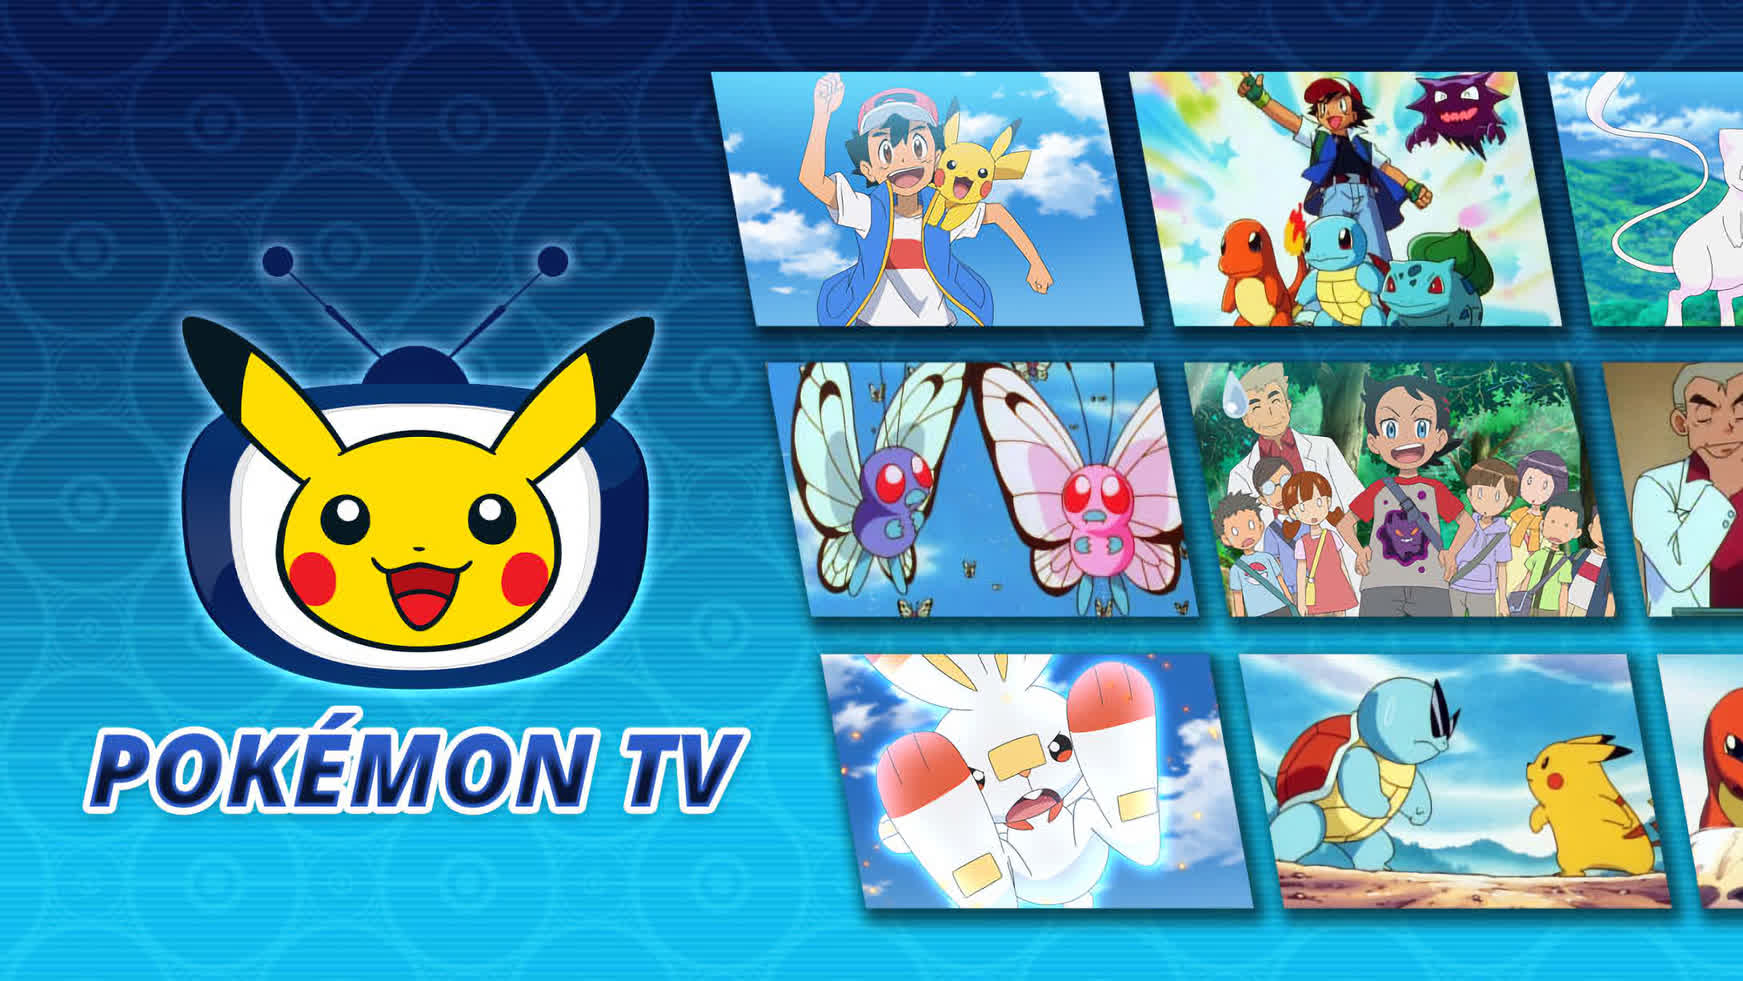 You can now watch the Pokémon TV series on your Switch